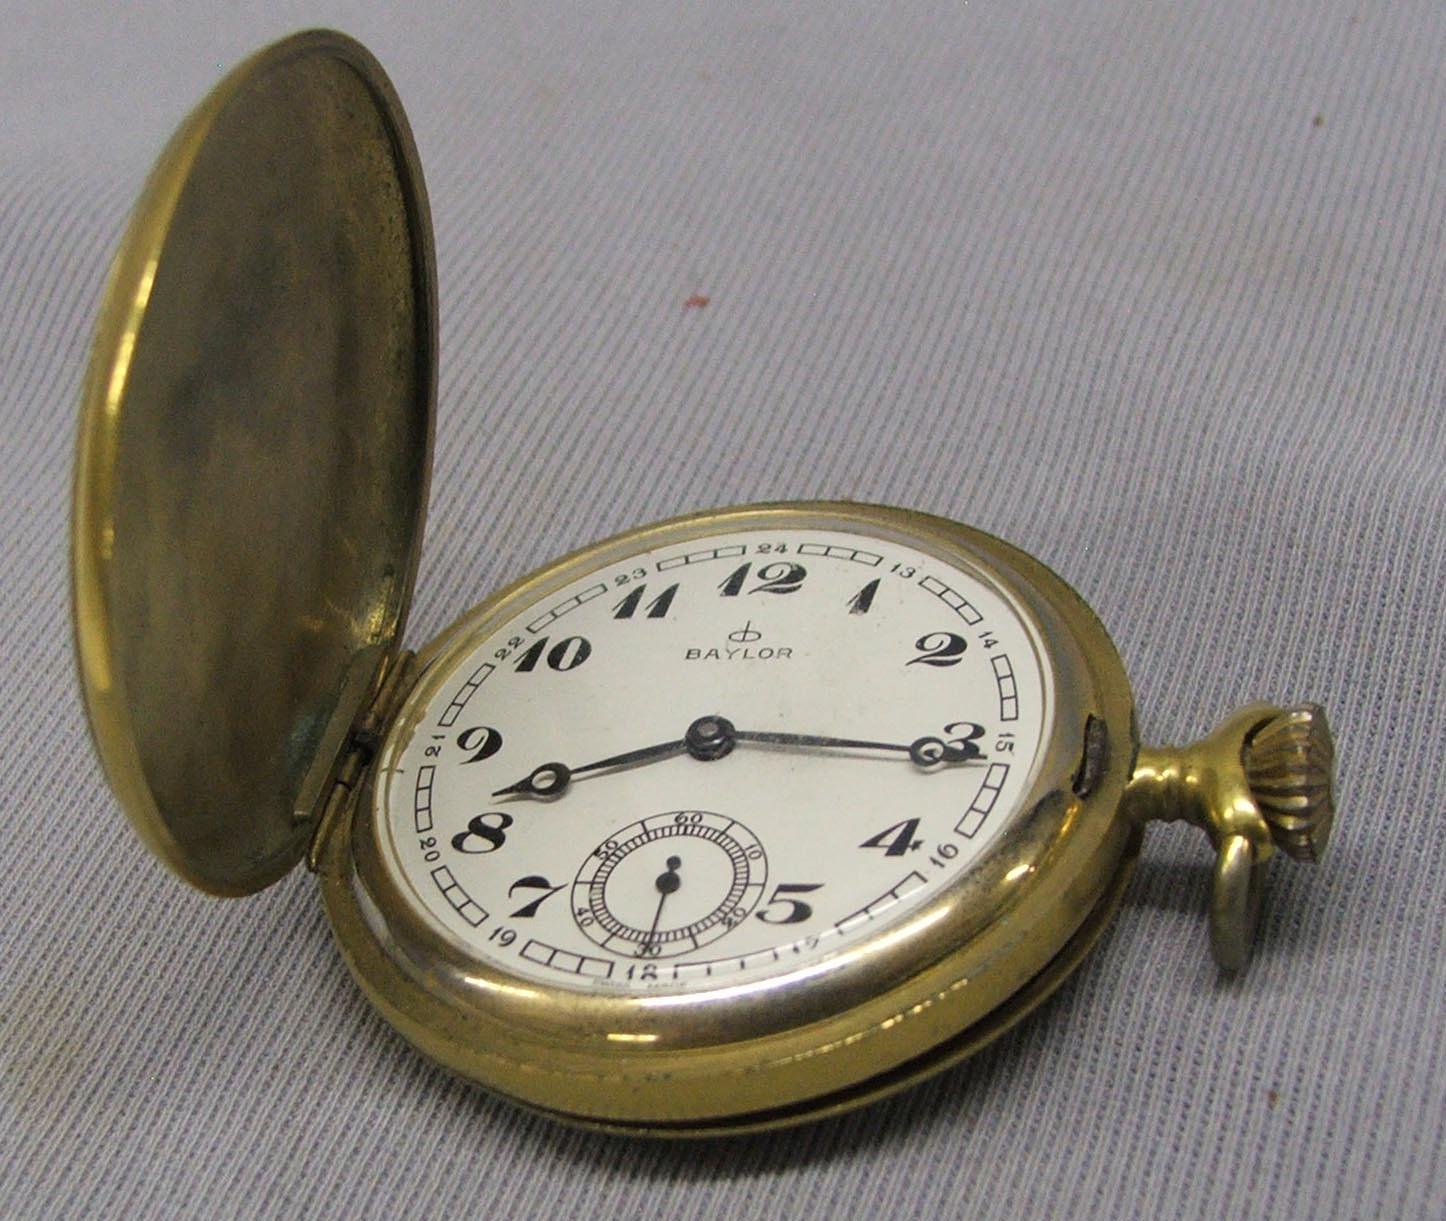 hamilton pocket watch dating This hamilton railroad service watch came with its original celluloid stamp holder  the watch is a 21 jeweled pocket watch in working order.